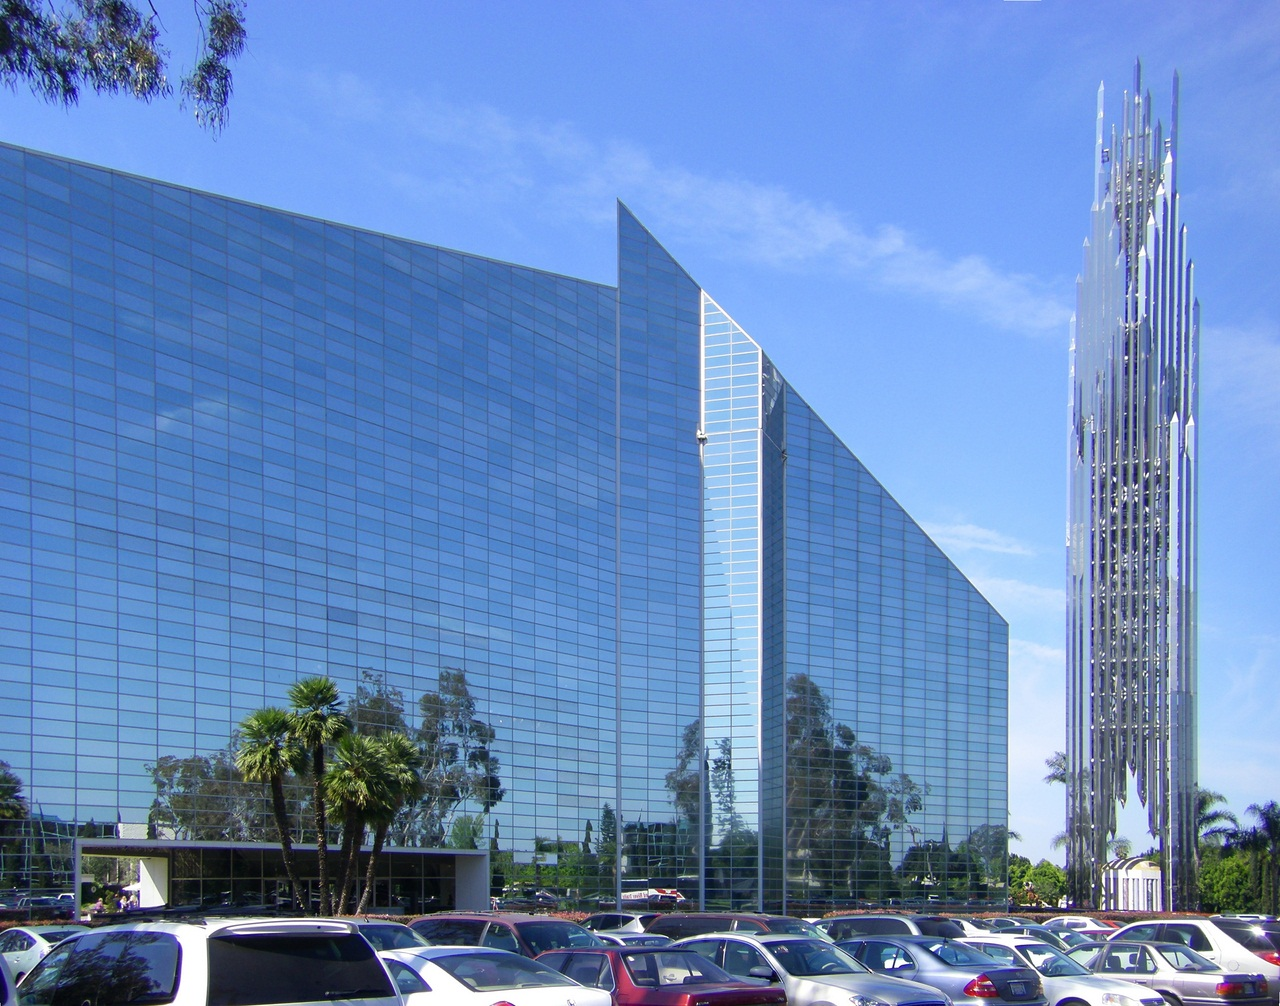 Crystal Cathedral with spire, Garden Grove (Anaheim/Los Angeles). View from NE. (C) 2009 [http://commons.wikimedia.org/wiki/User:Wattewyl Wikimedia user